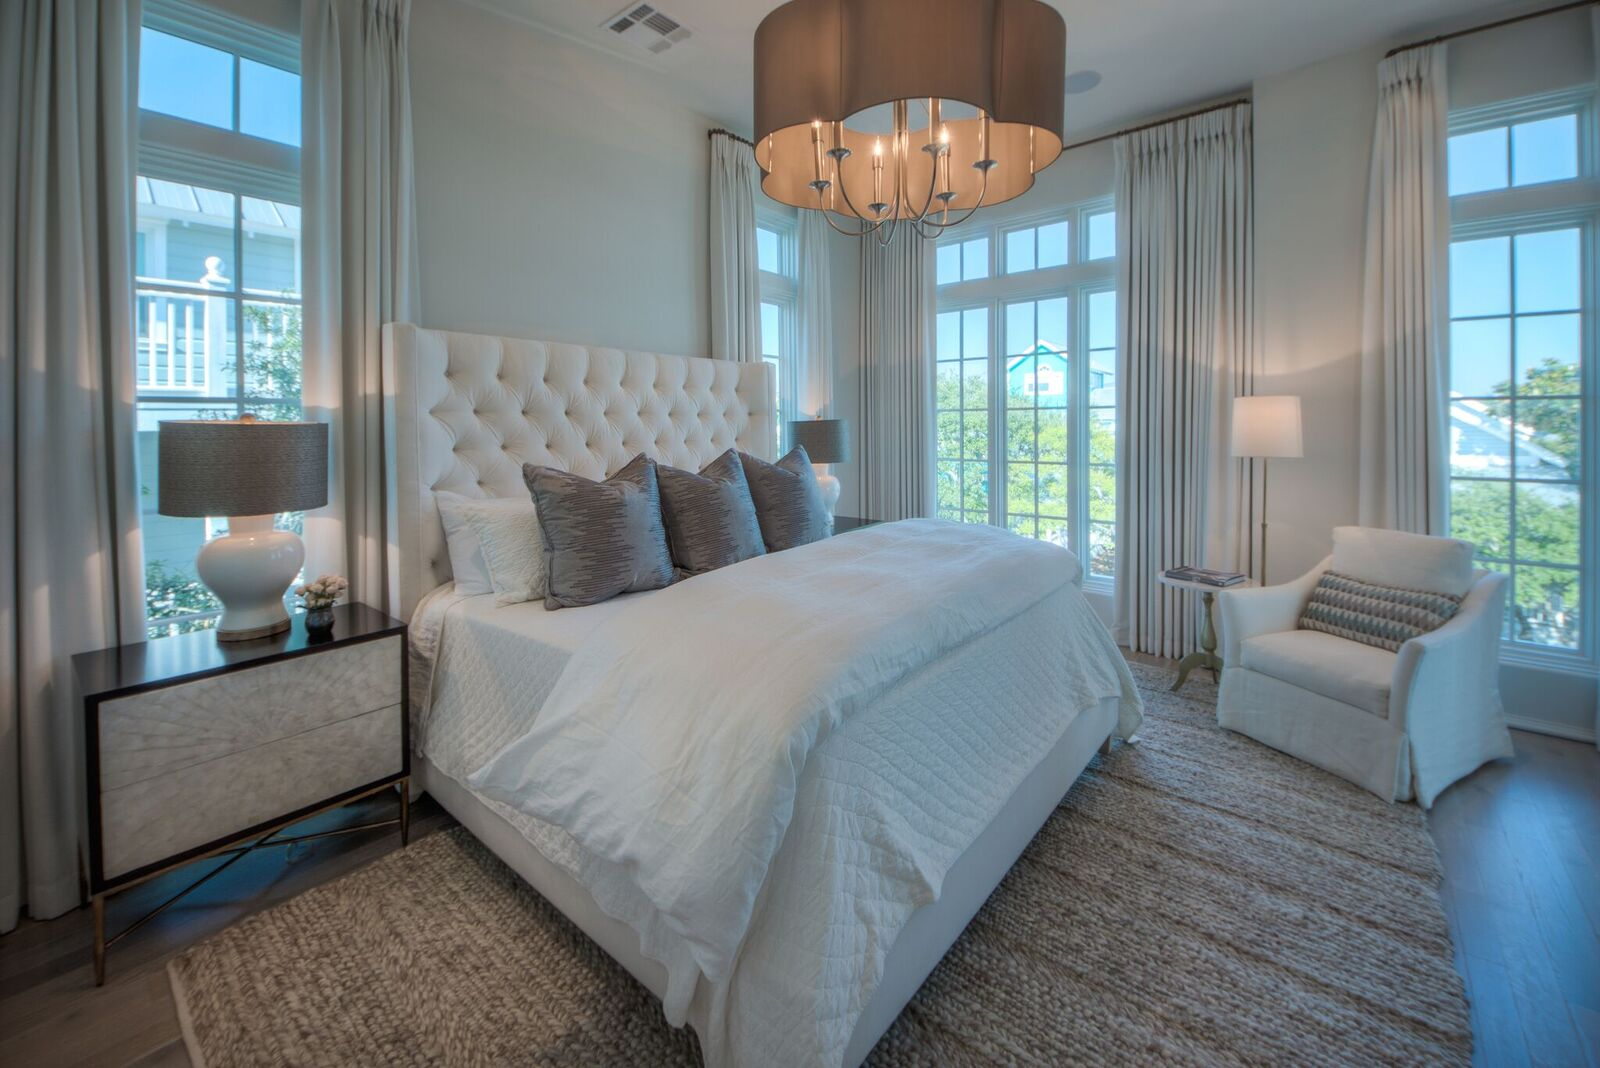 Luxurious King Master Suite on the 2nd floor